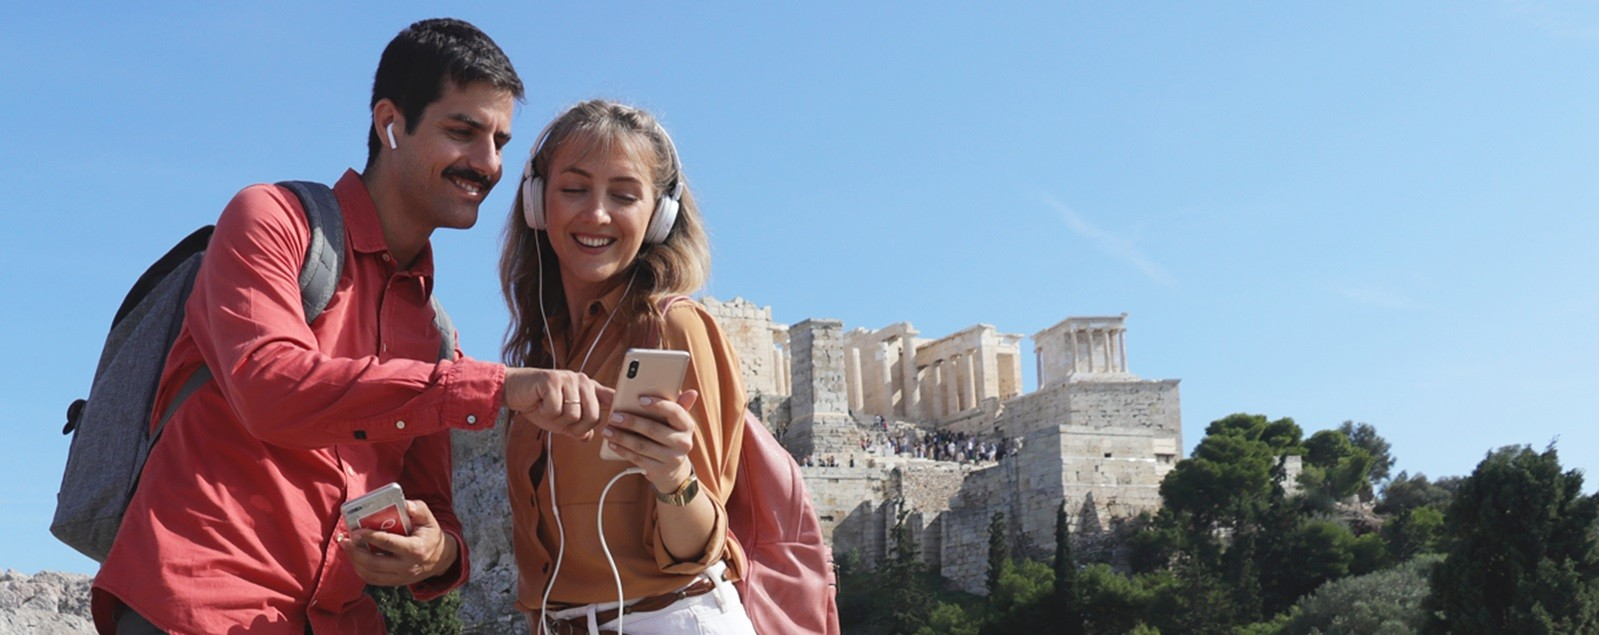 Acropolis, Agora, and Zeus Temple Entrance Tickets with Audio